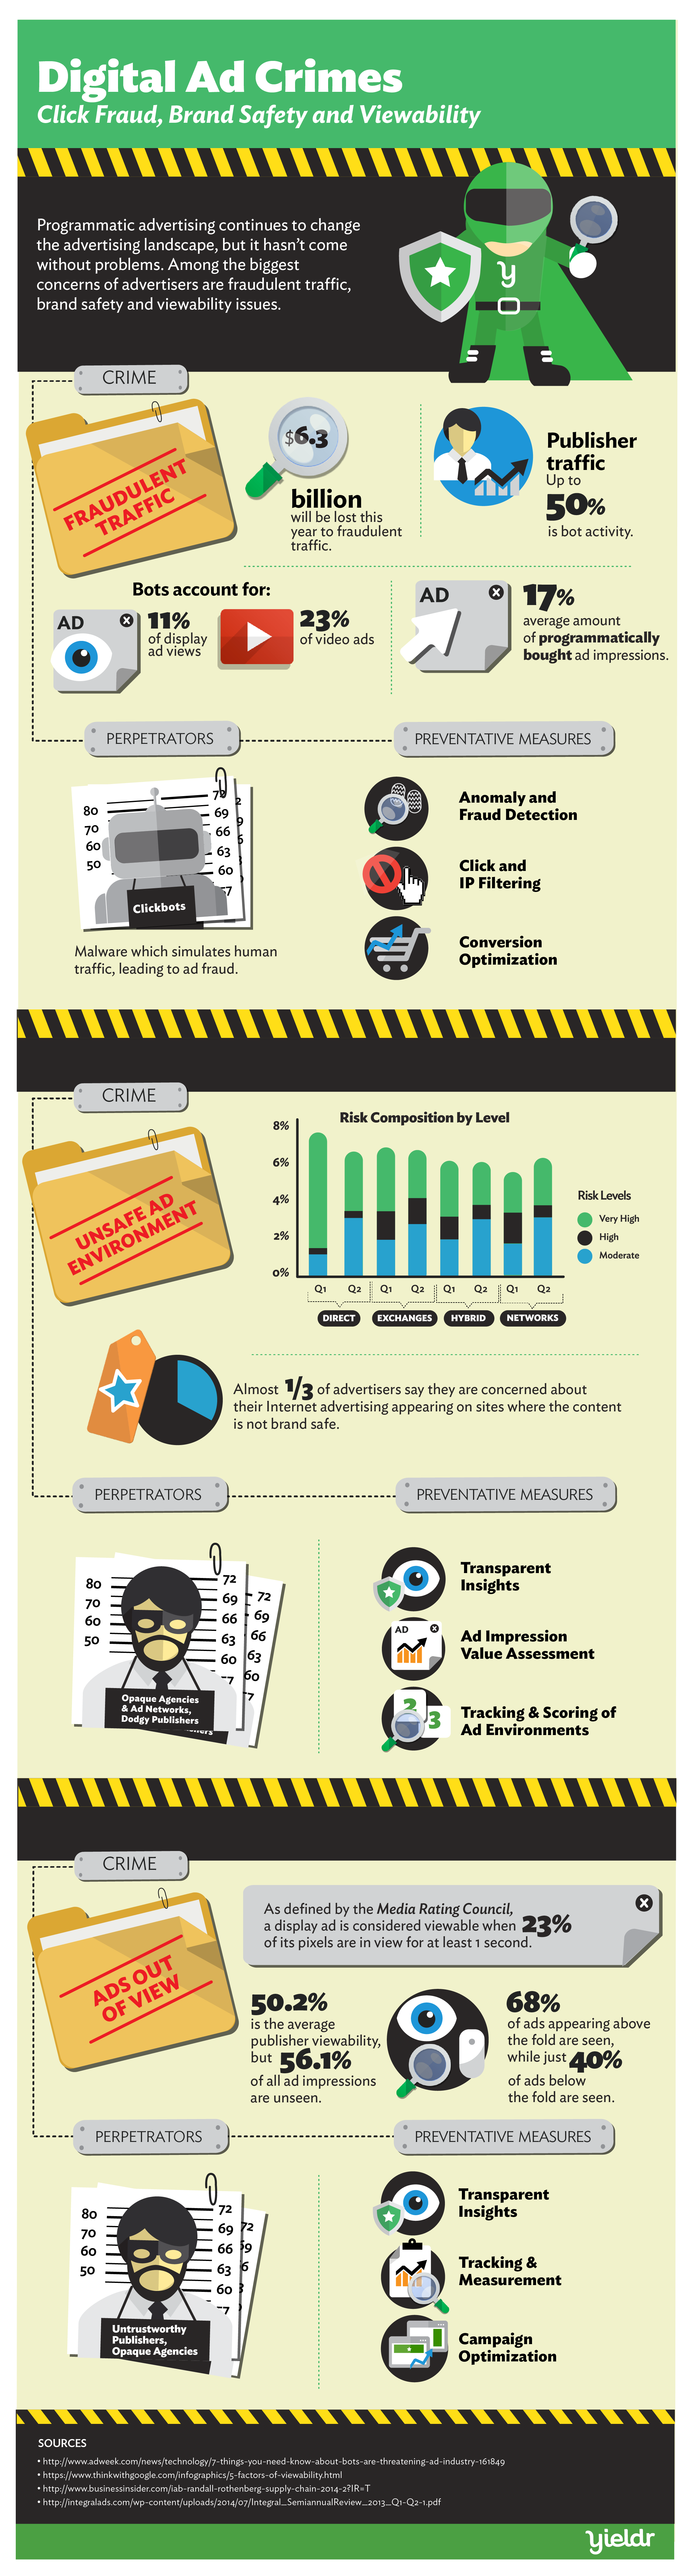 Click Fraud, Brand Safety & Viewability infographic_150420-01